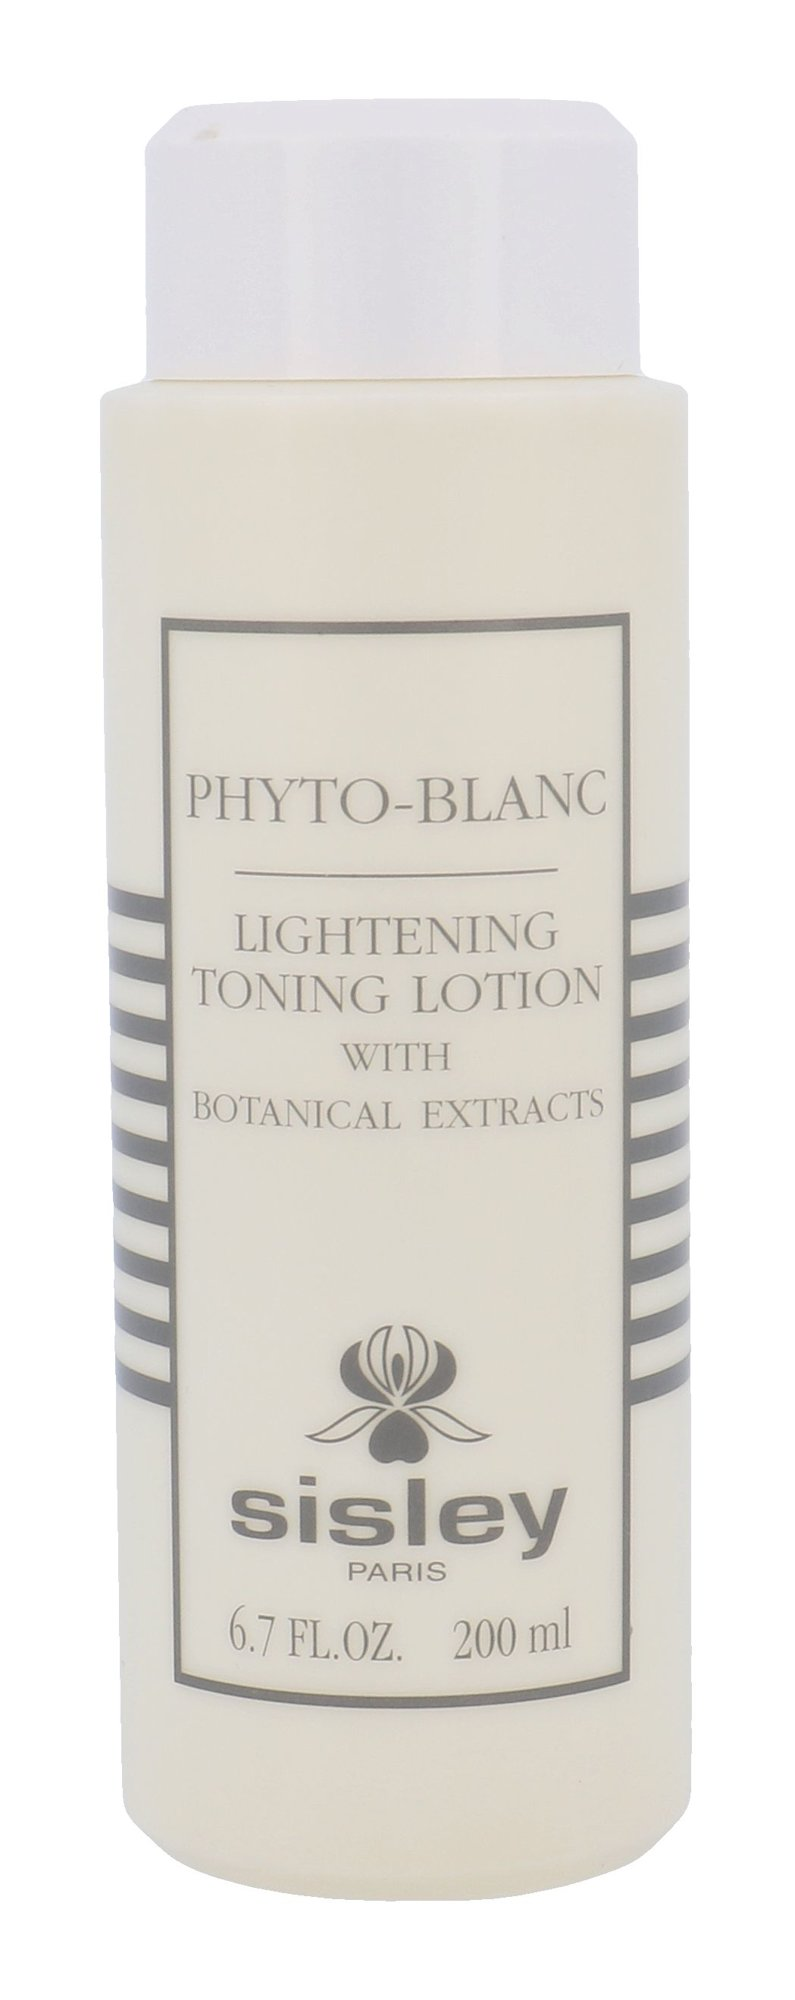 Sisley Phyto-Blanc Lightening Toning Lotion Cosmetic 200ml